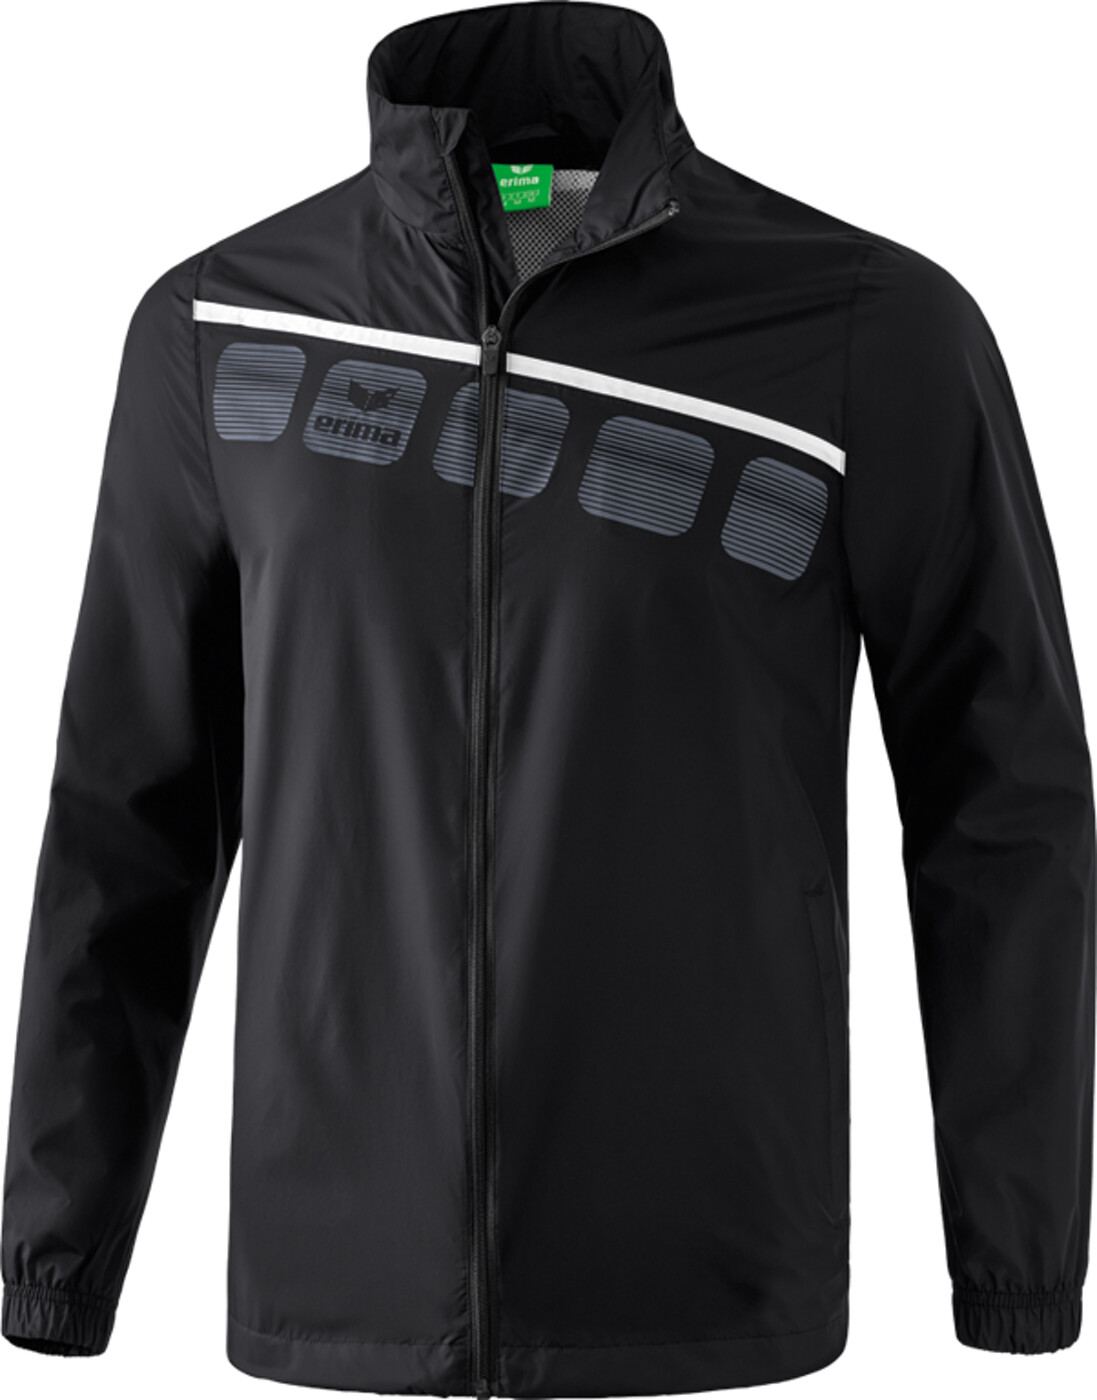 ERIMA 5-C all-weather jacket - Herren